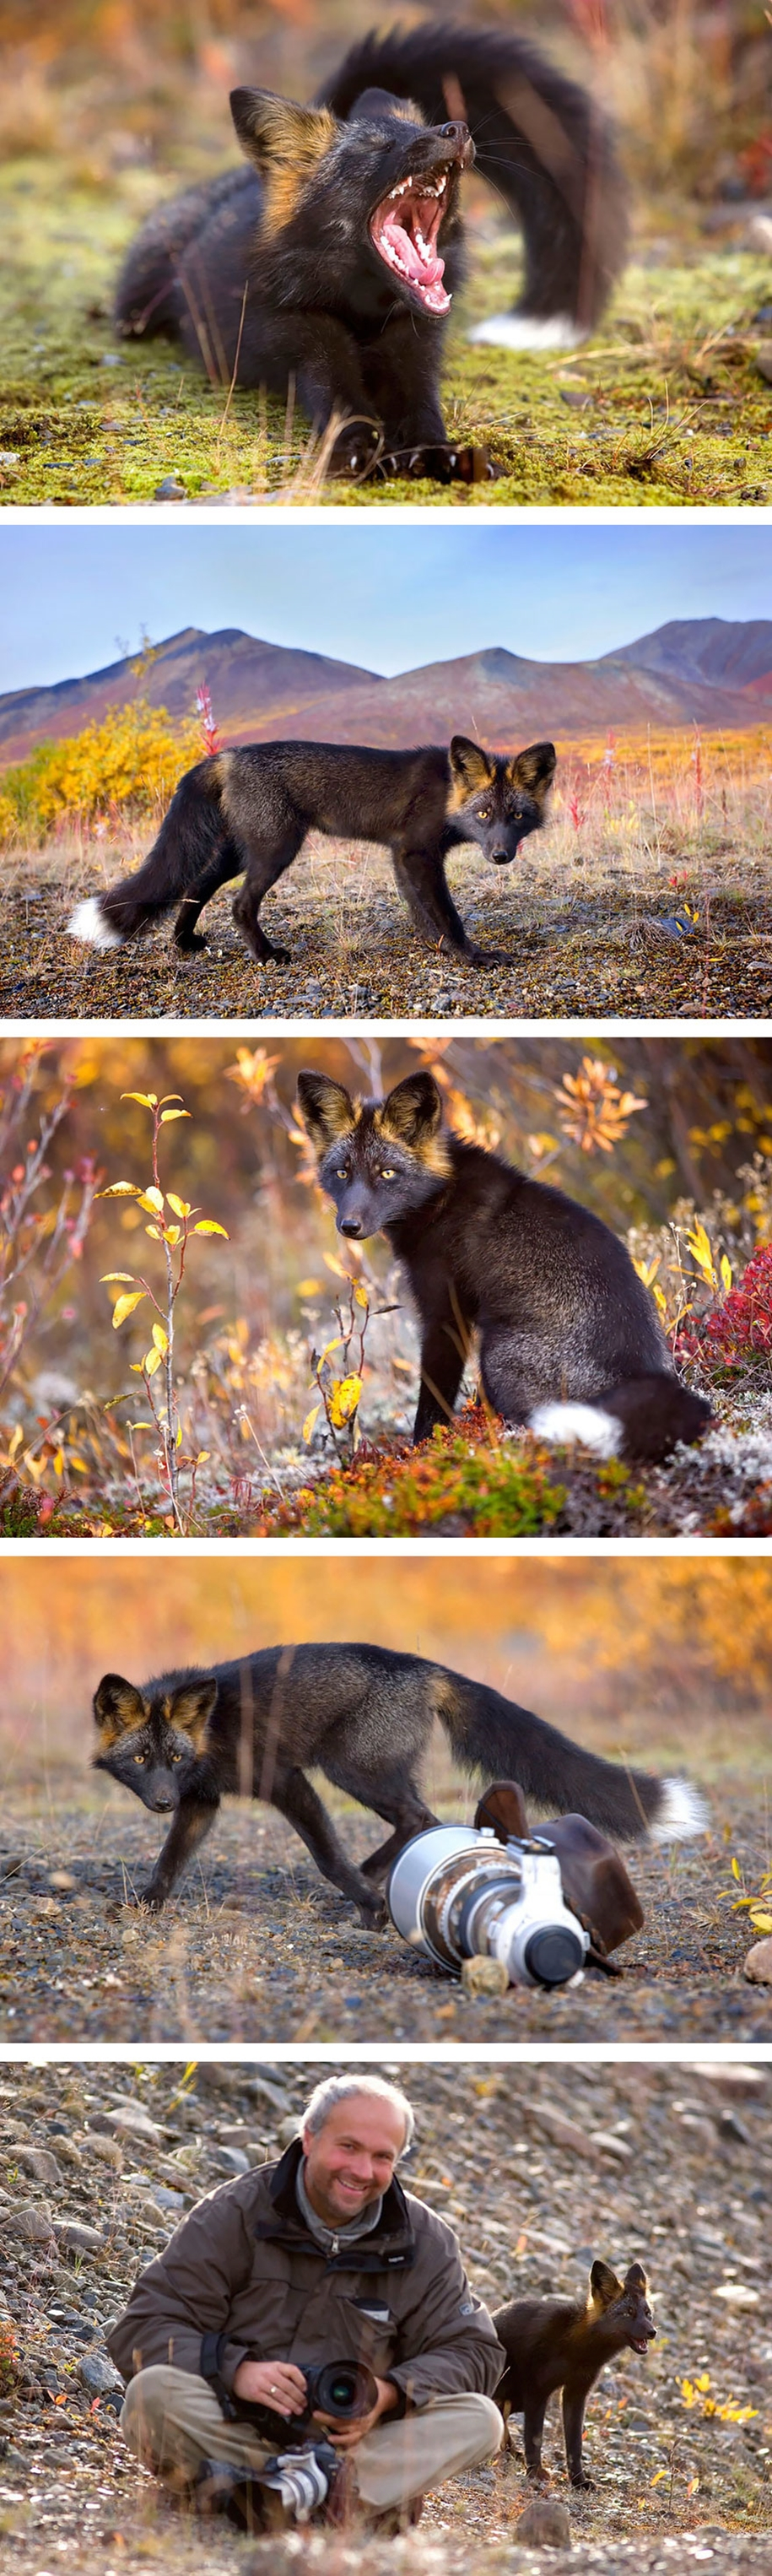 The rare beauty of the black Fox 04